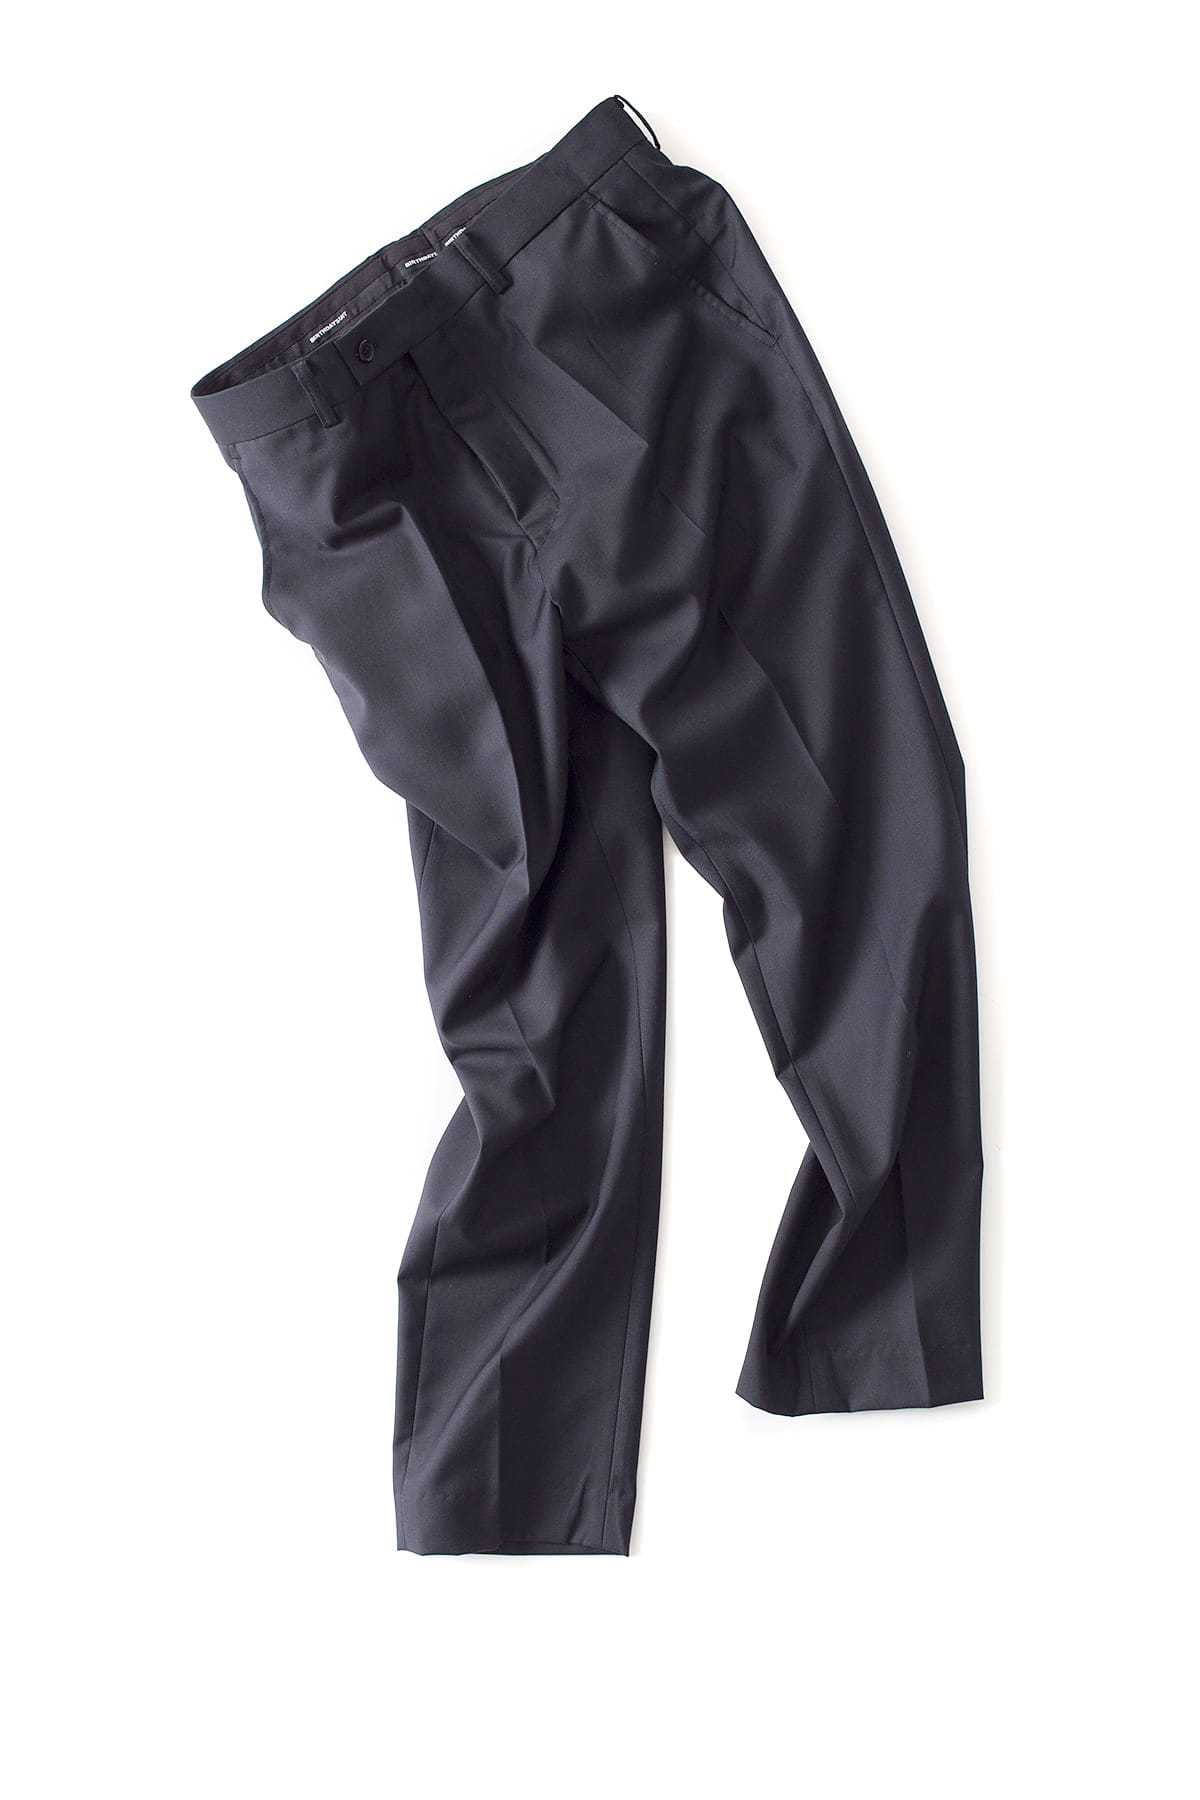 BIRTHDAYSUIT : Daily Suit Pants (Dark Navy)